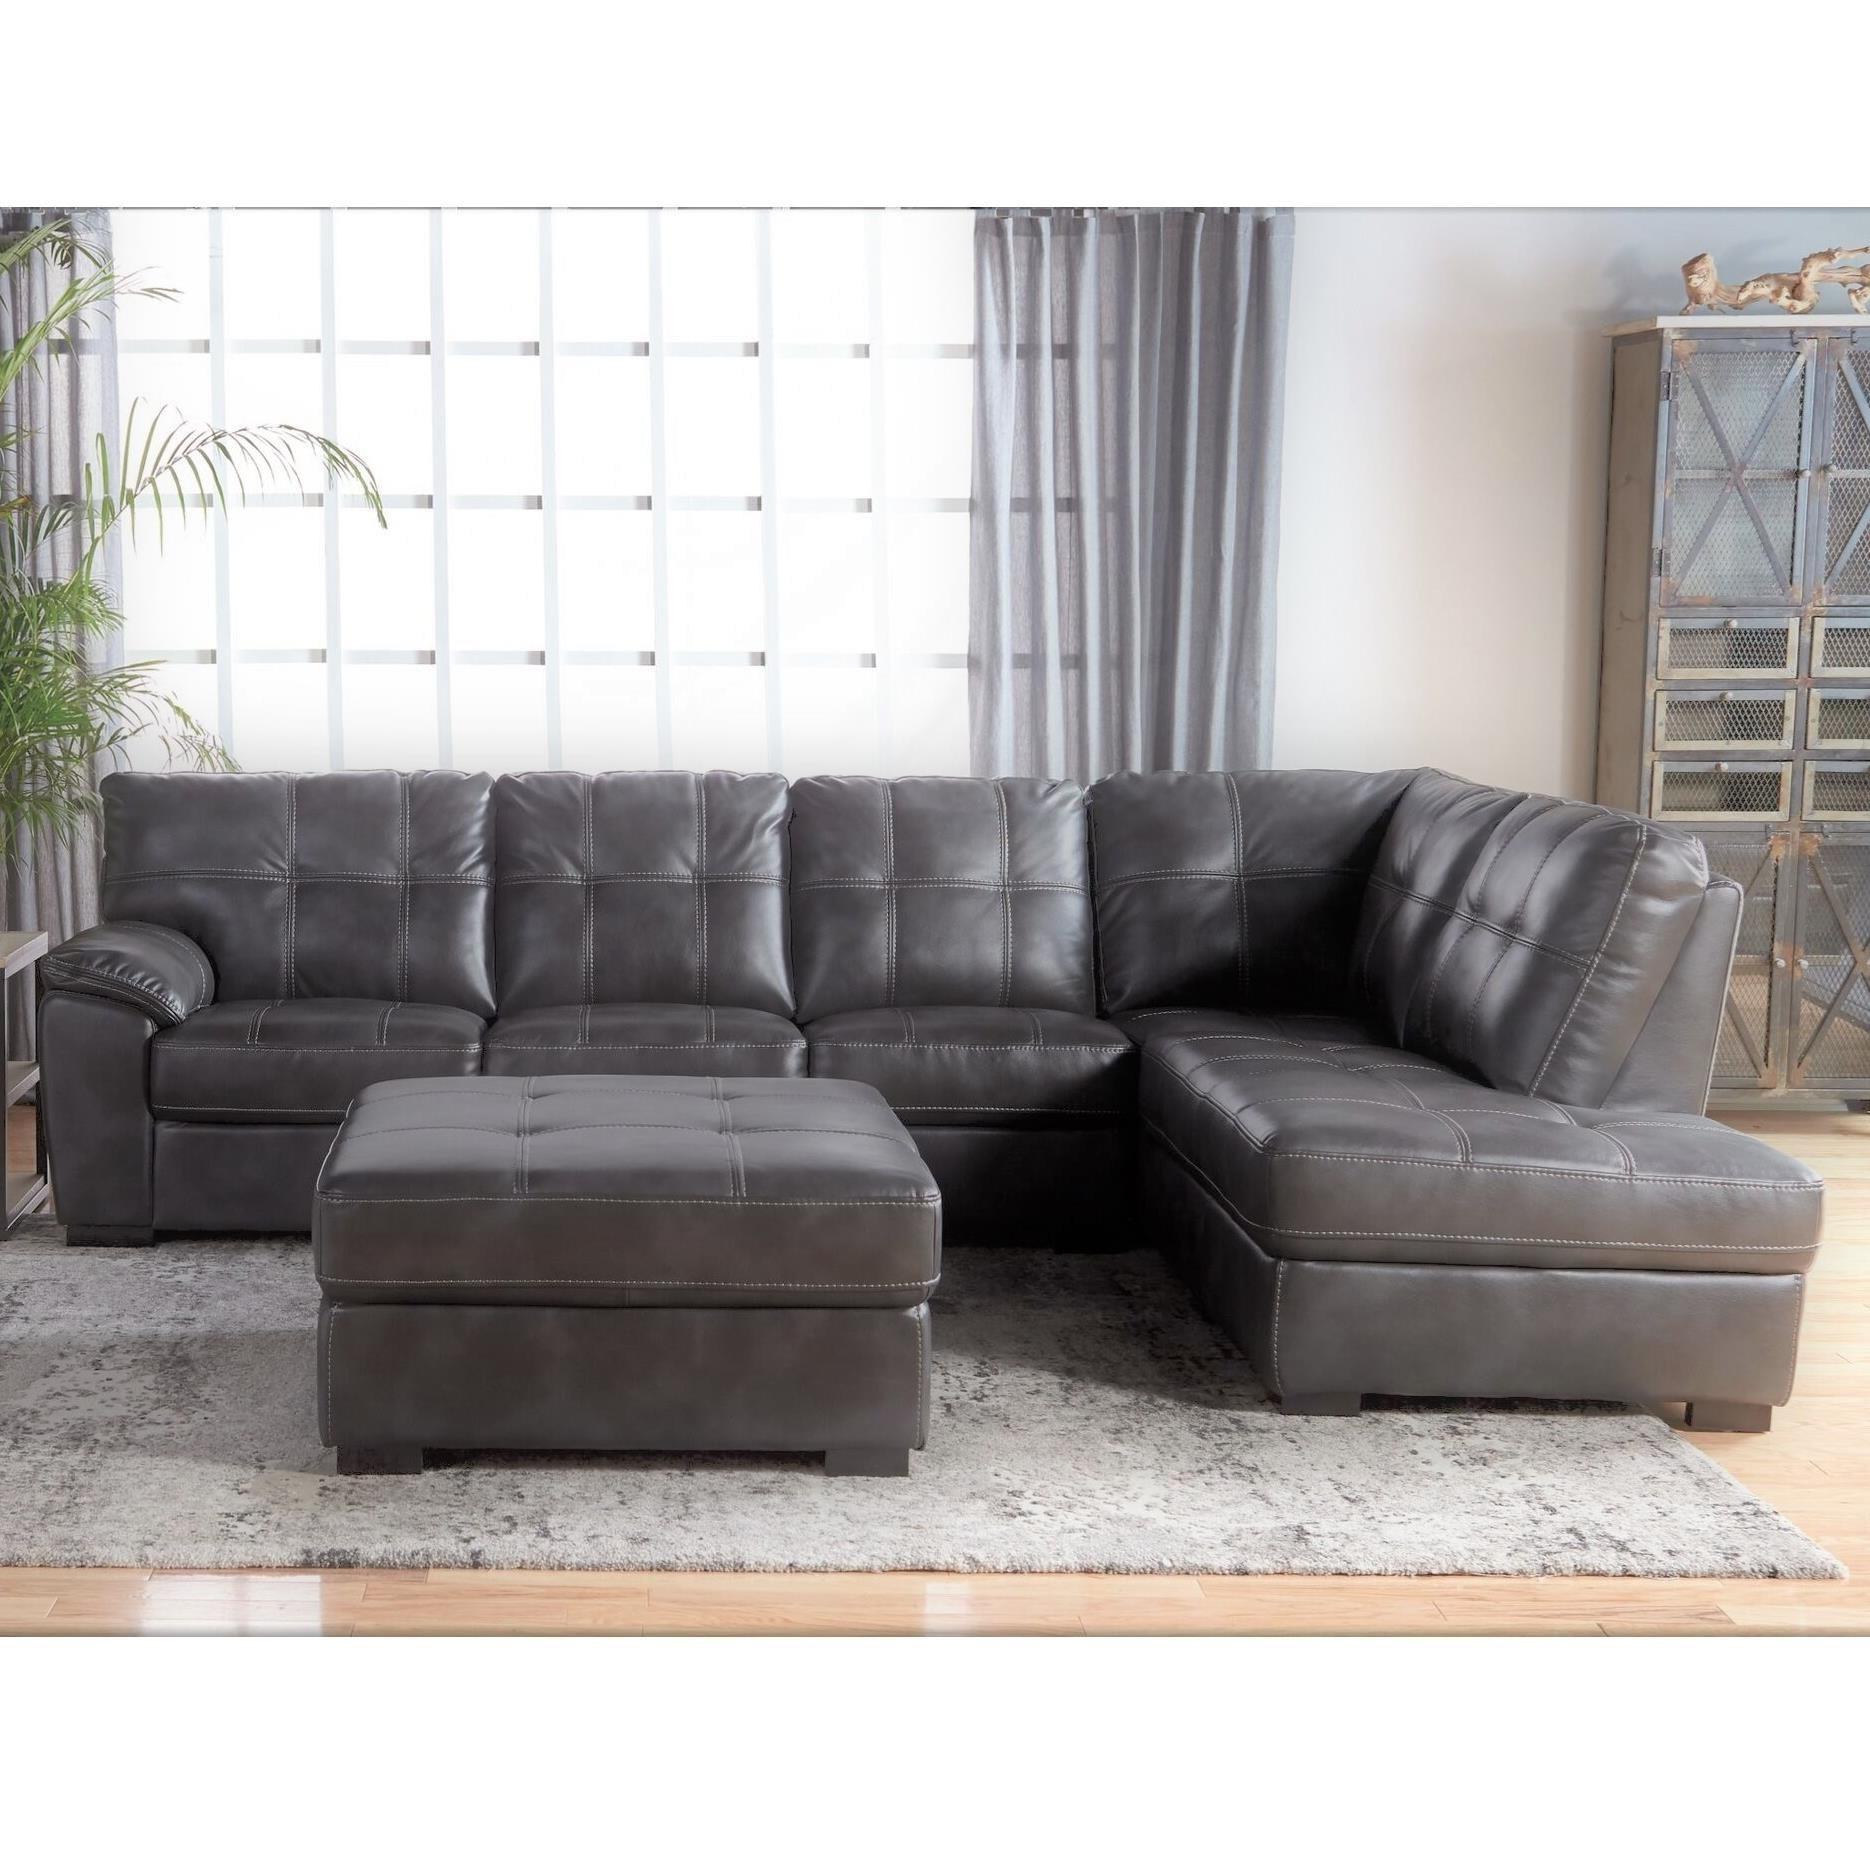 Furniture Chaise 5312 Tufted Sectional With Bumper Chaise By Cheers At Van Hill Furniture